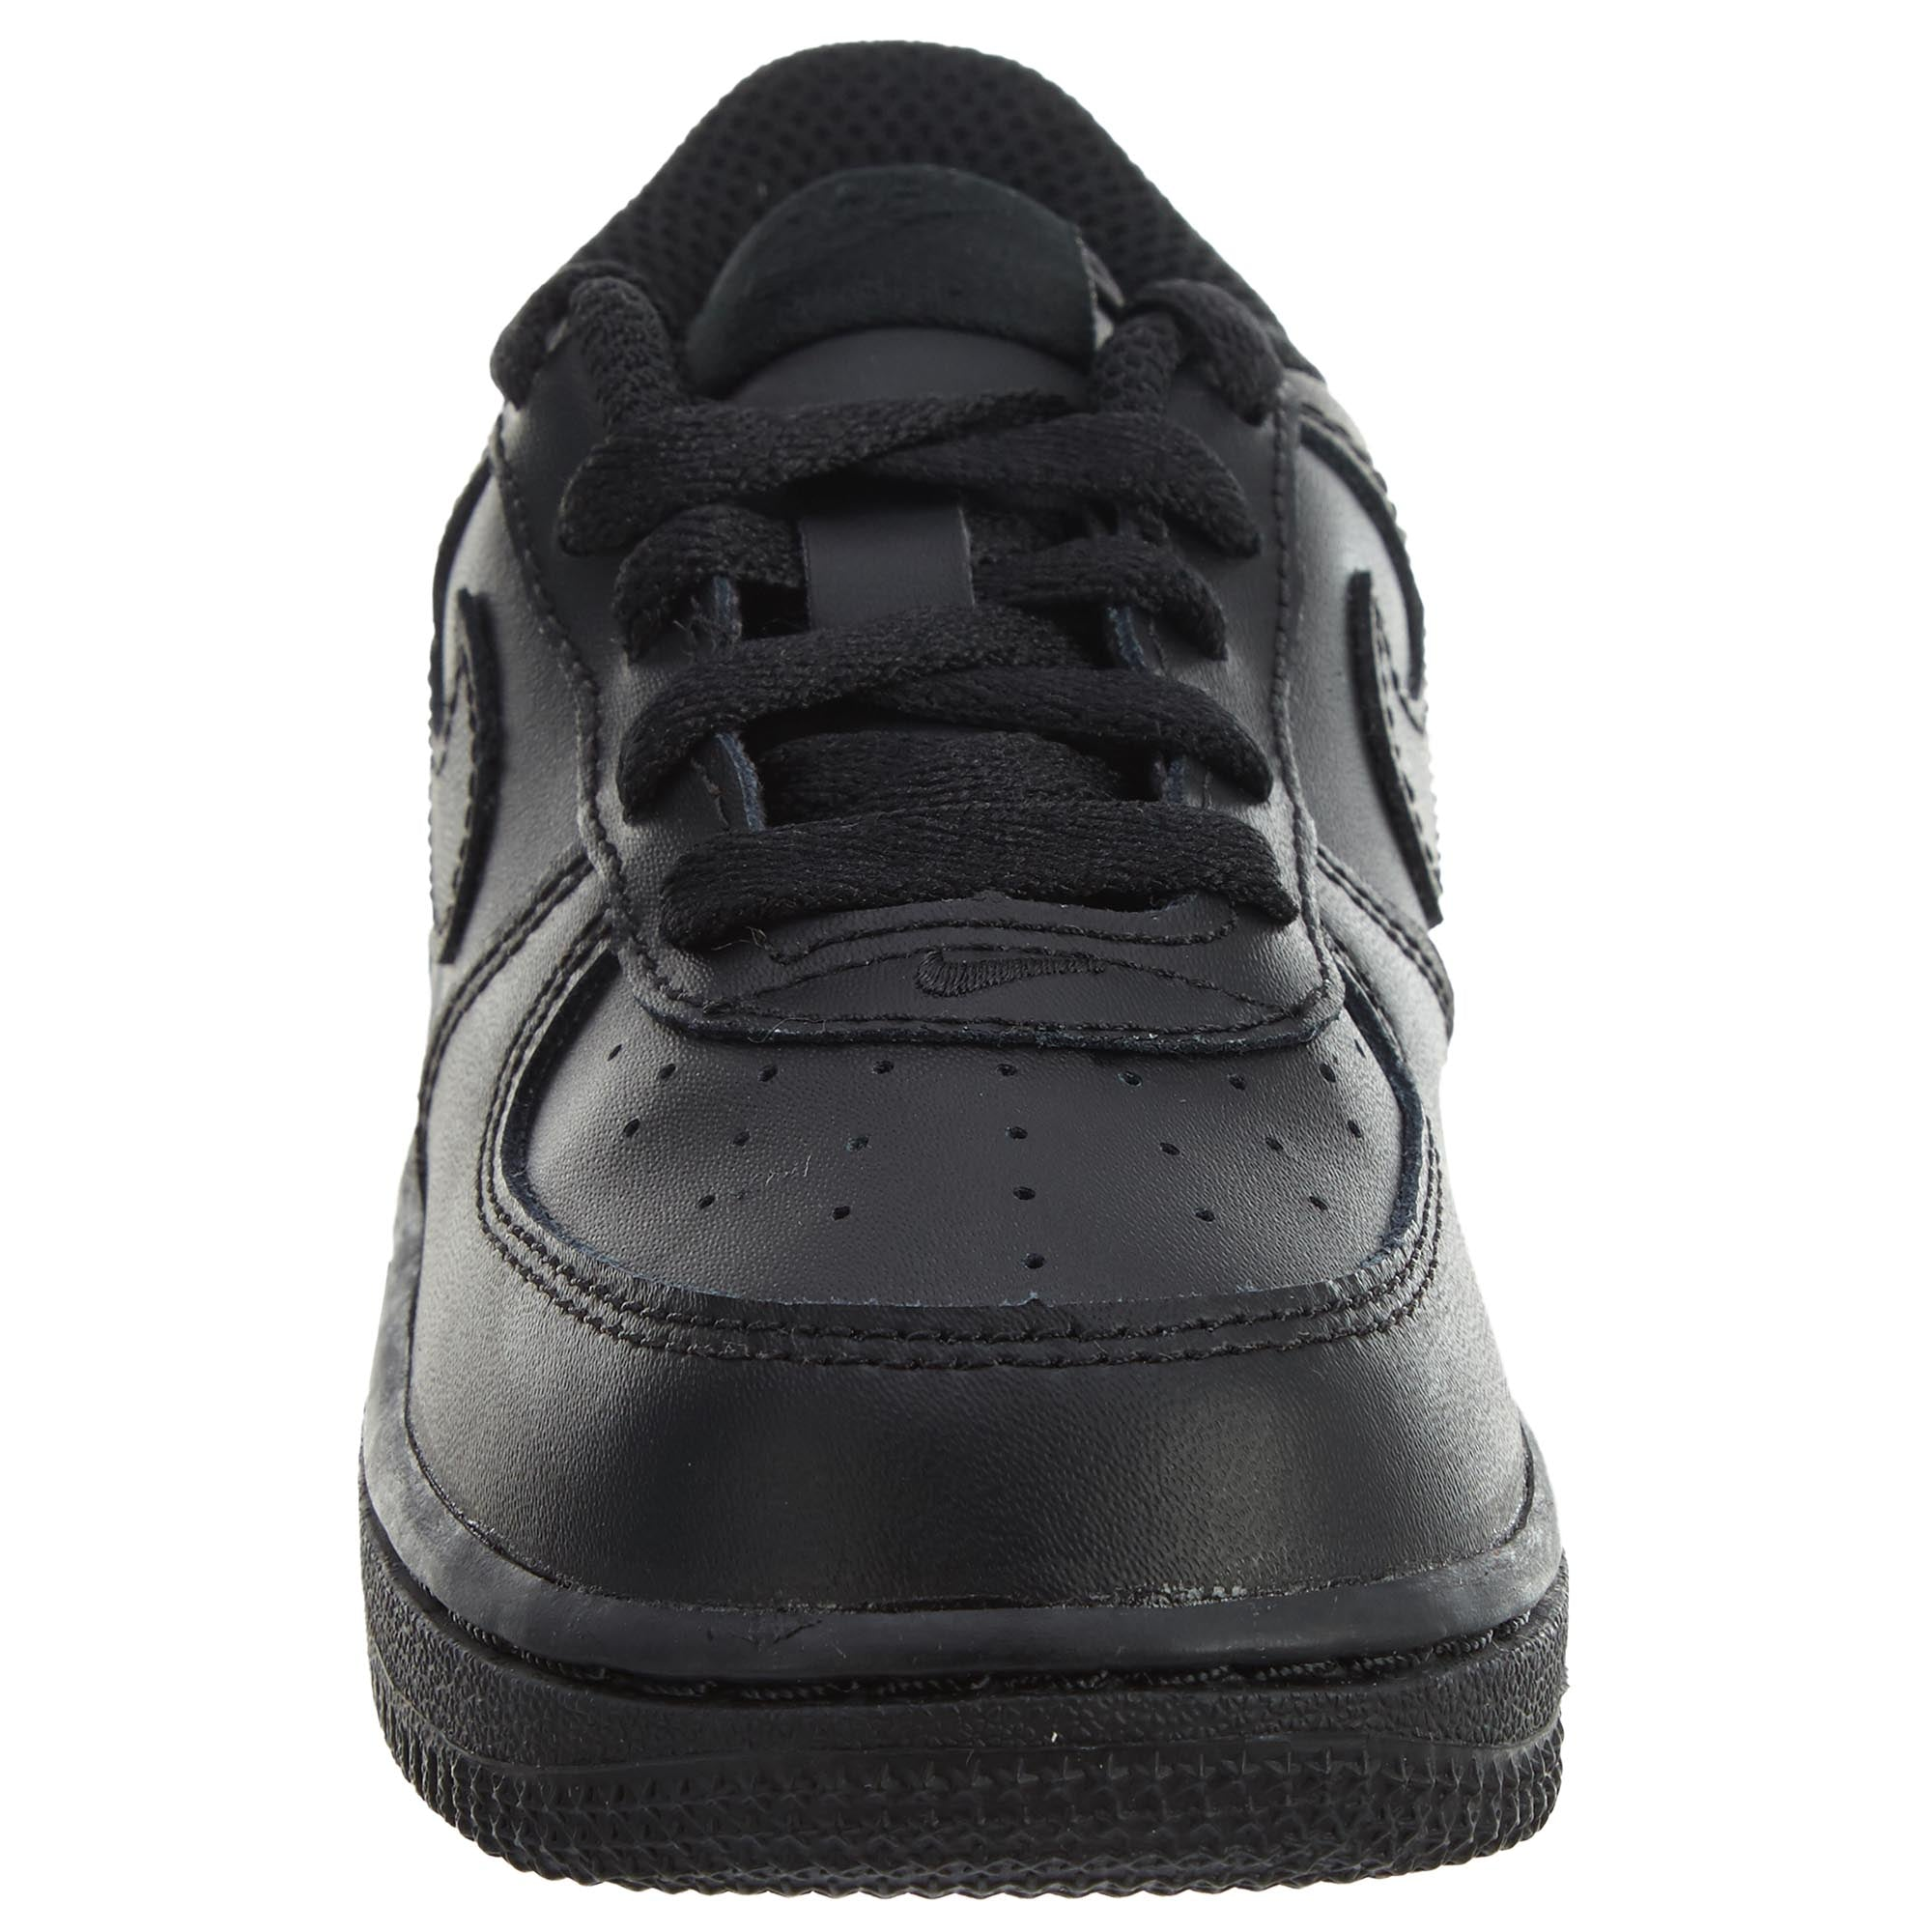 pretty nice 9adee 8992e Nike Force 1 Toddlers Style   314194